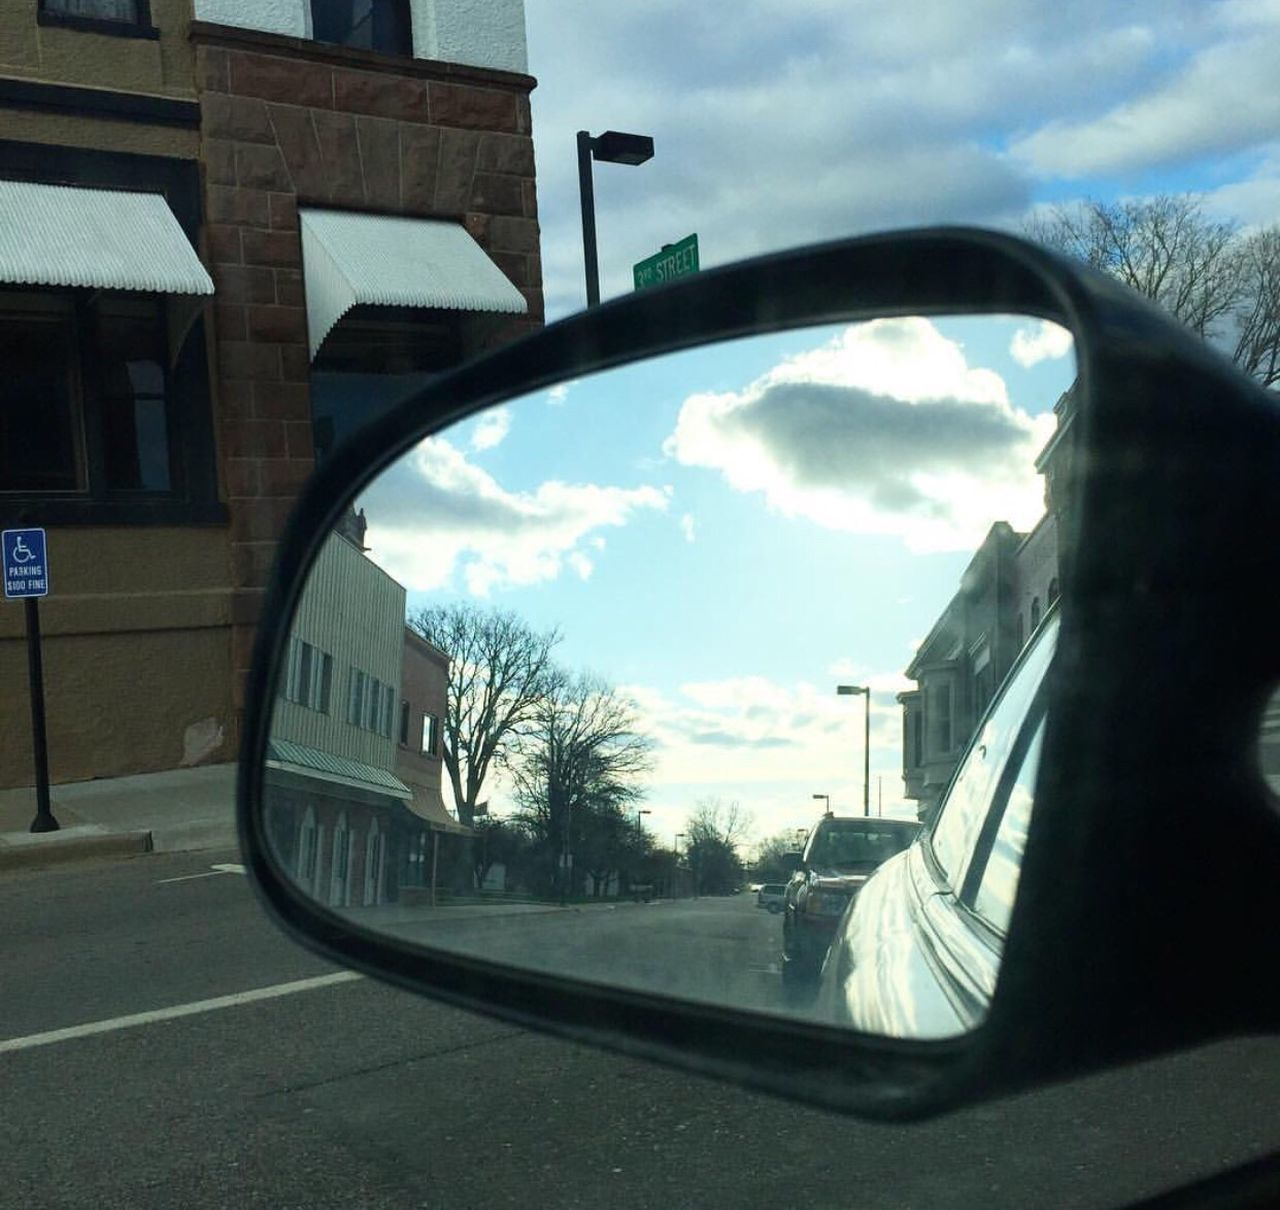 sky, architecture, built structure, transportation, car, building exterior, road, day, window, land vehicle, cloud - sky, side-view mirror, no people, city, tree, outdoors, close-up